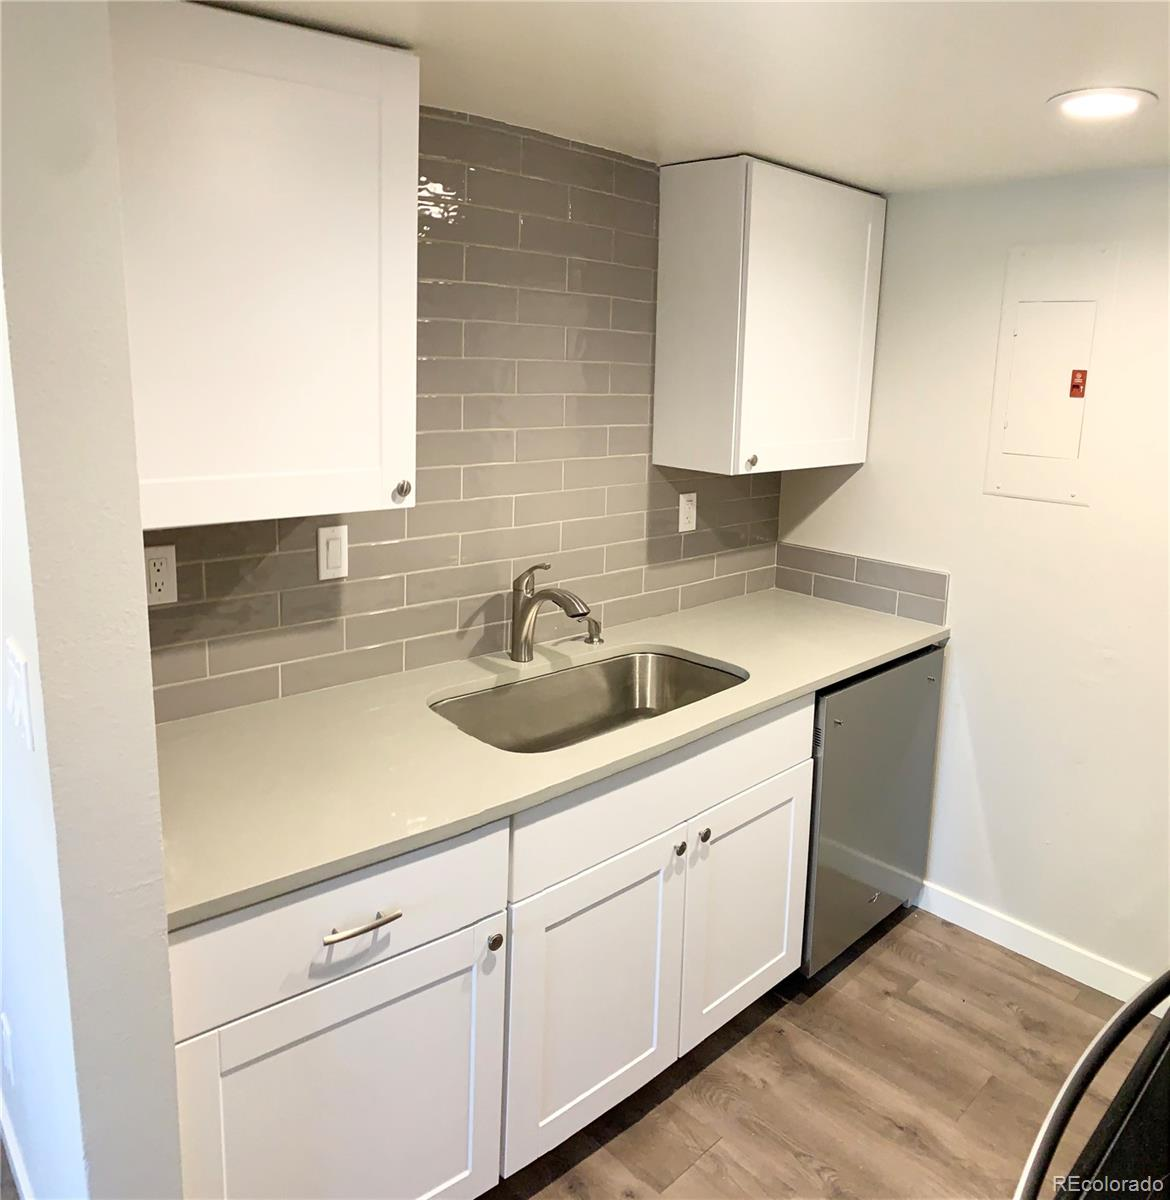 Agent owner.  Completely remodeled, everything is new!  Kitchen, bathroom, flooring, and  all appliances. Furnace, air conditioner washer, dryer and  water heater all new! Move in and enjoy! One car garage and one reserved space! Excellent location! Only minutes away from public transportation, light rail station, shopping and dining, Children's Hospital, University Hospital and the VA Hospital!